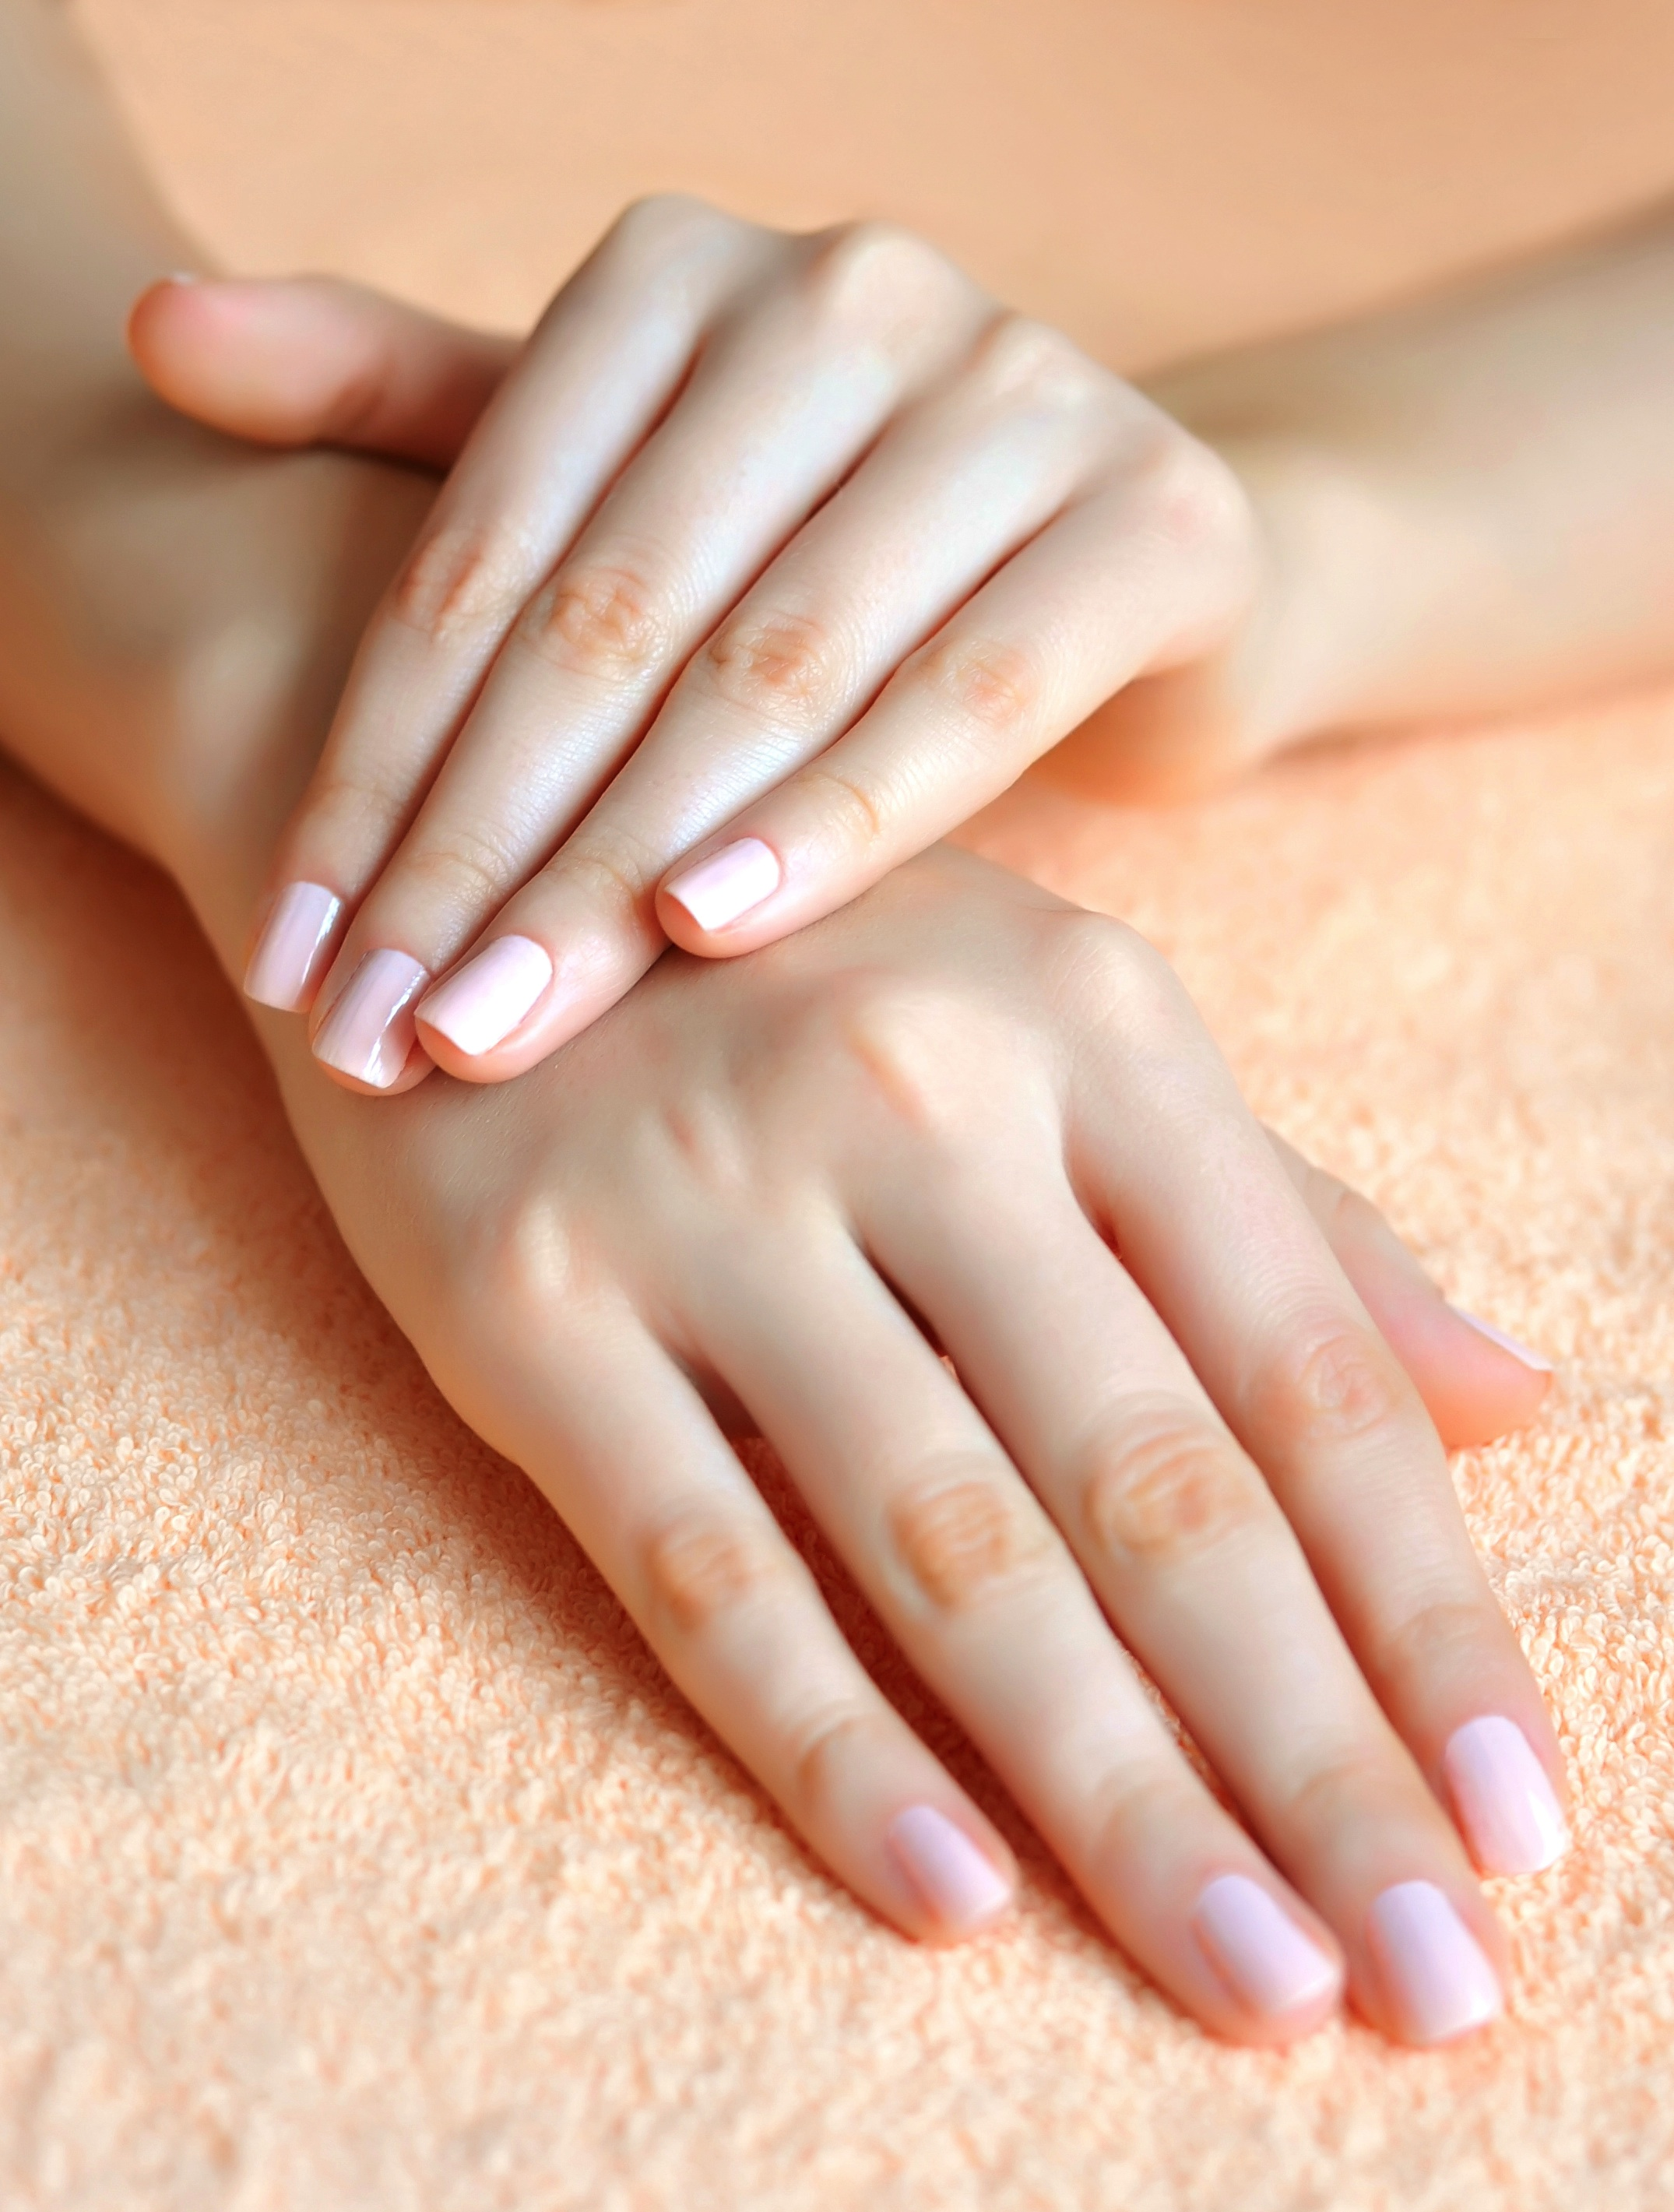 Tough as Nails: How to Get Strong Fingernails - More